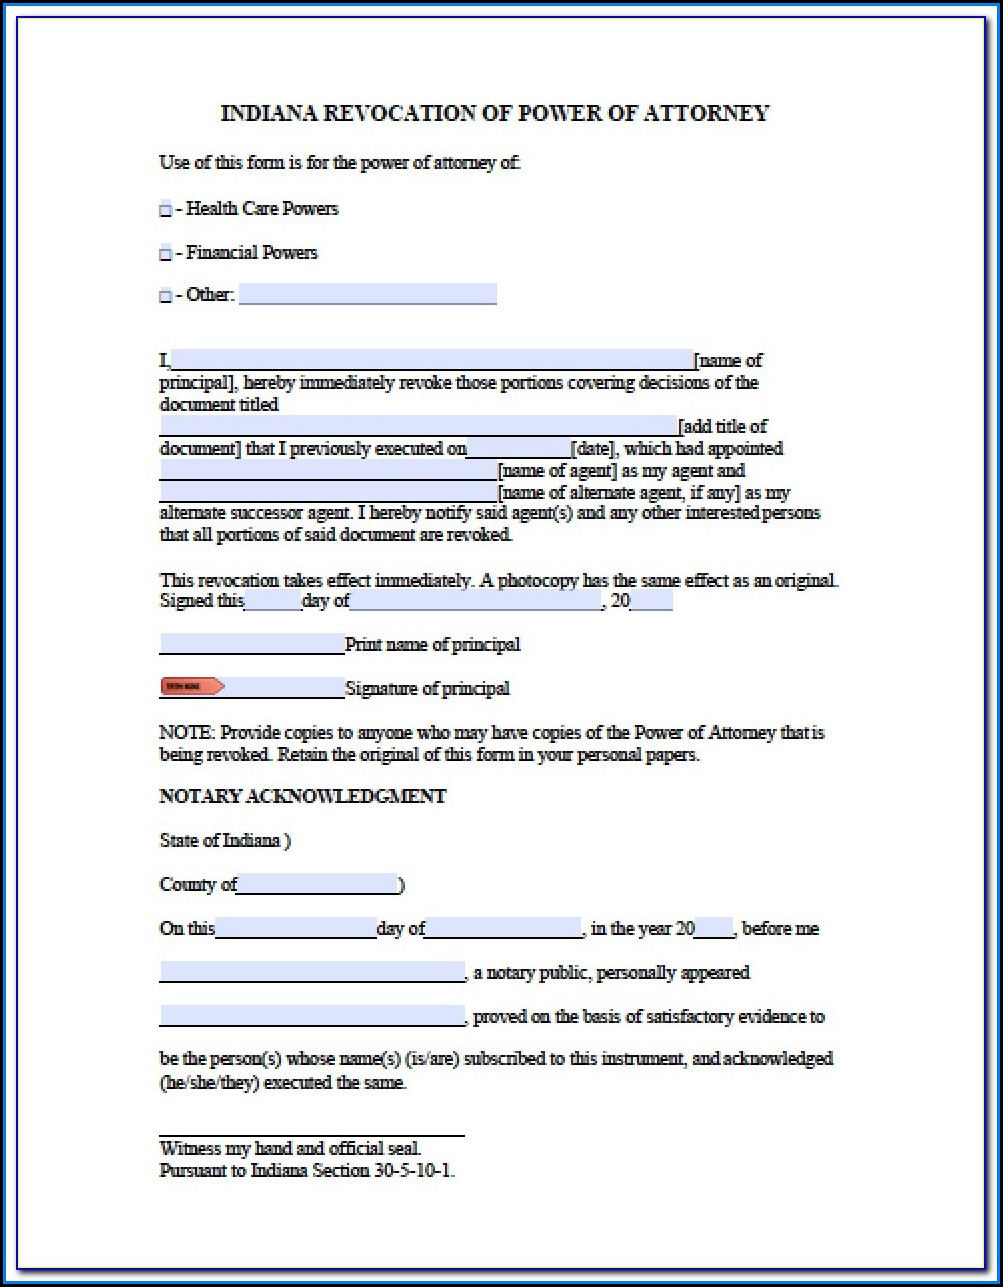 Free Printable Power Of Attorney Form Indiana